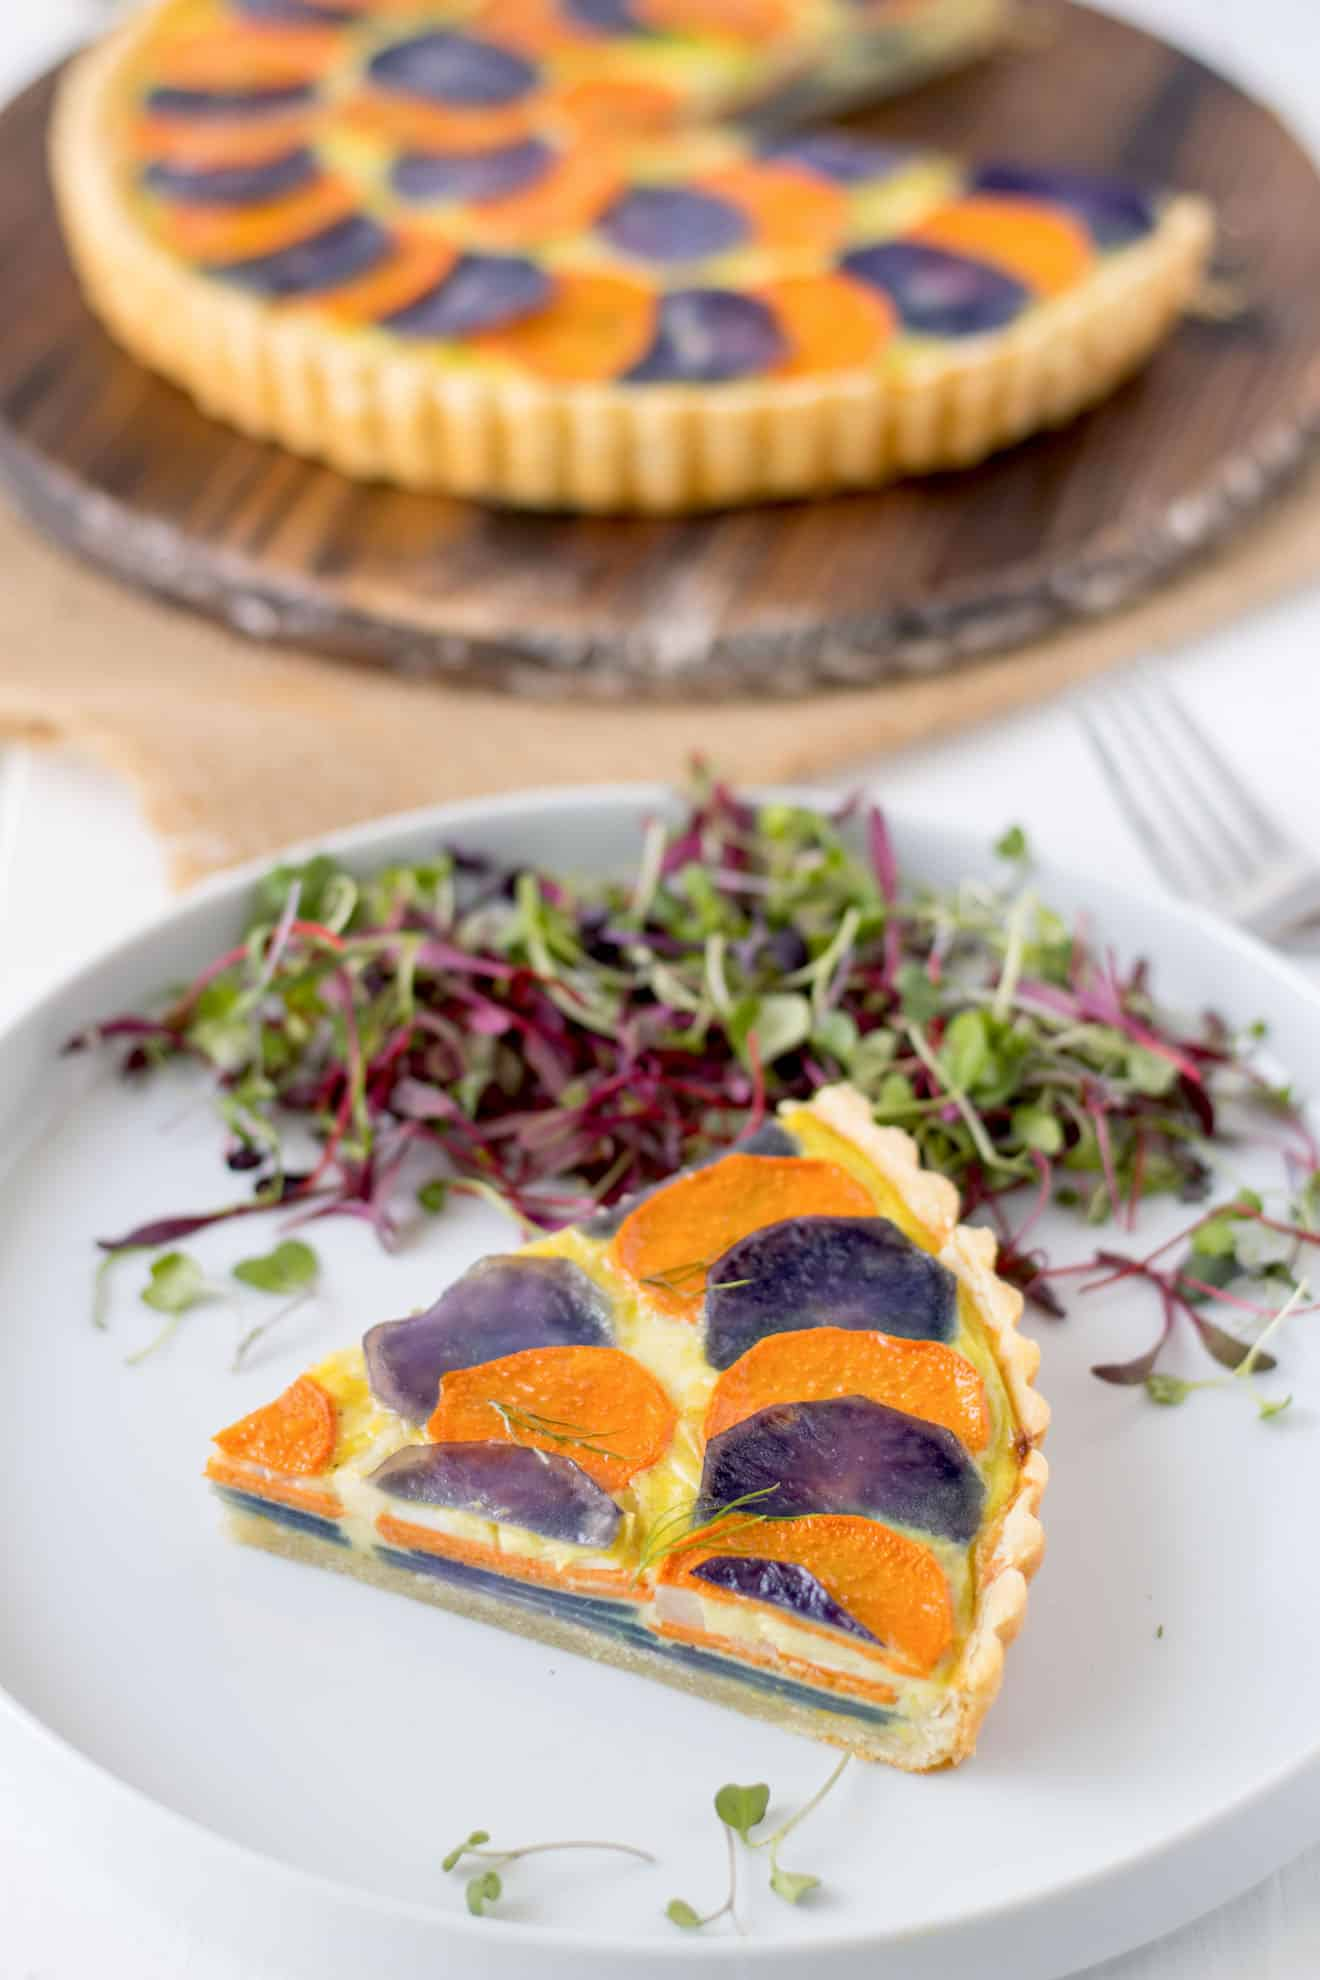 A slice of potato and vegetable quiche on a white plate with micro greens